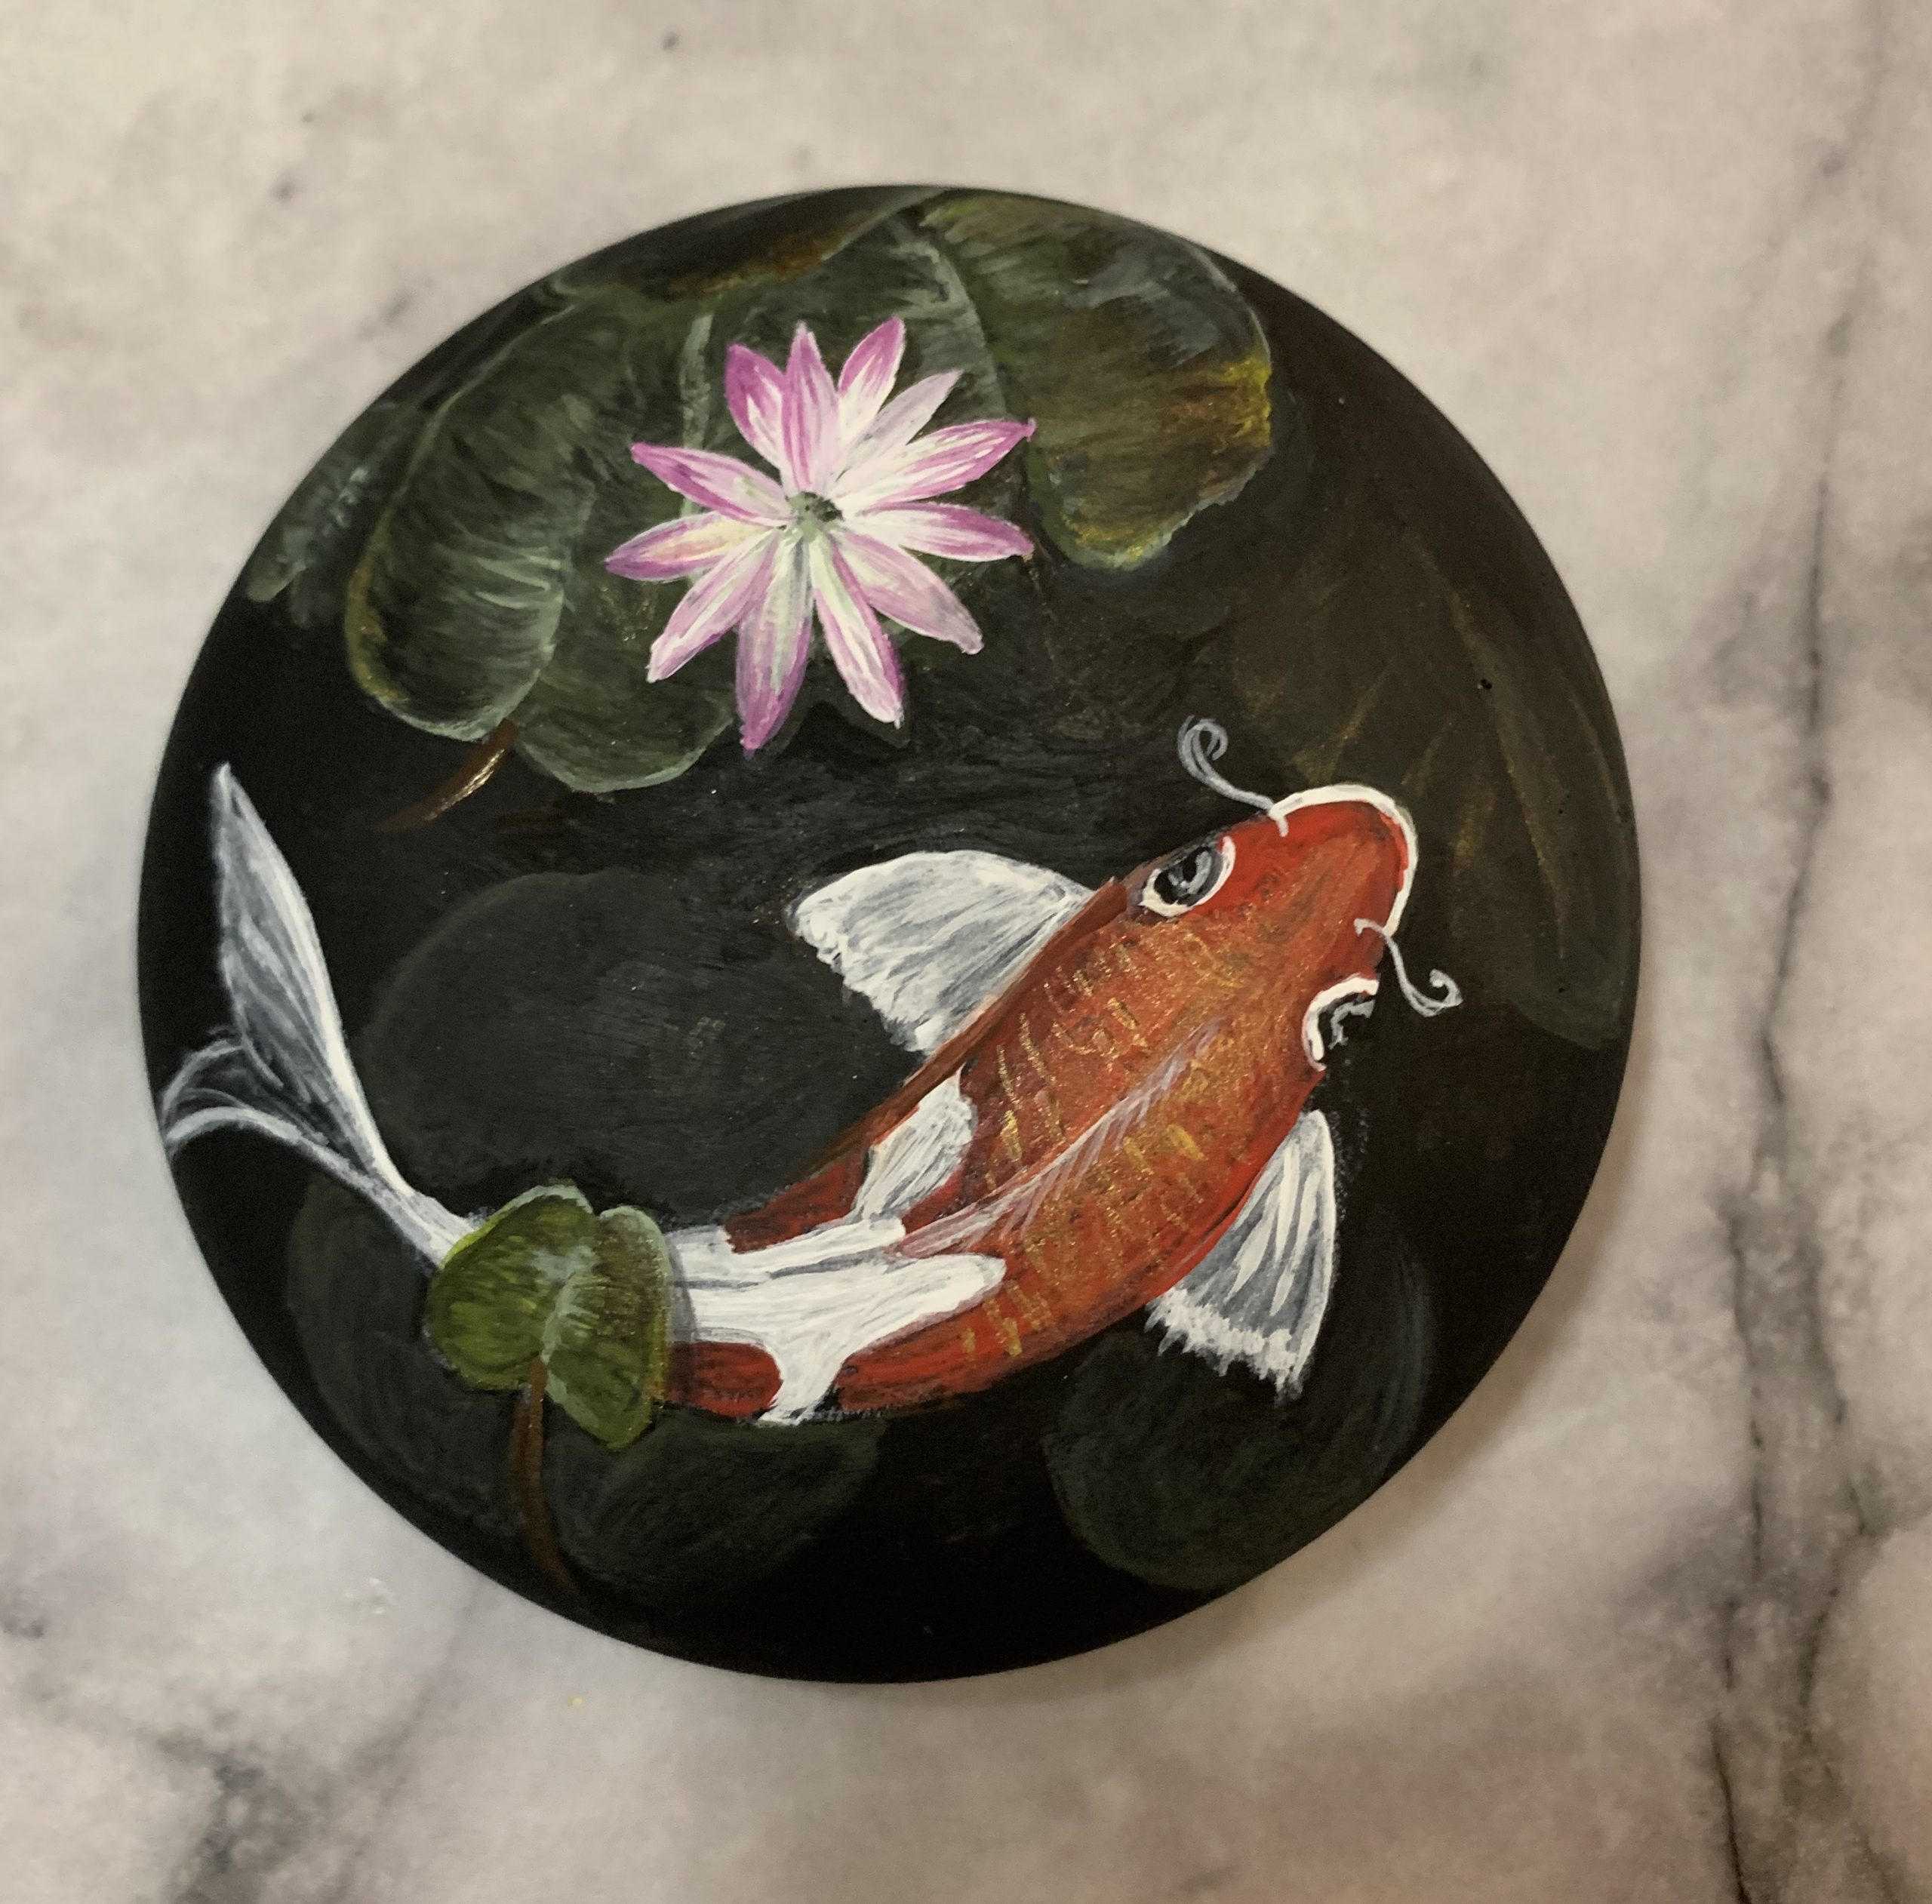 Koi Fish - Dark Pond